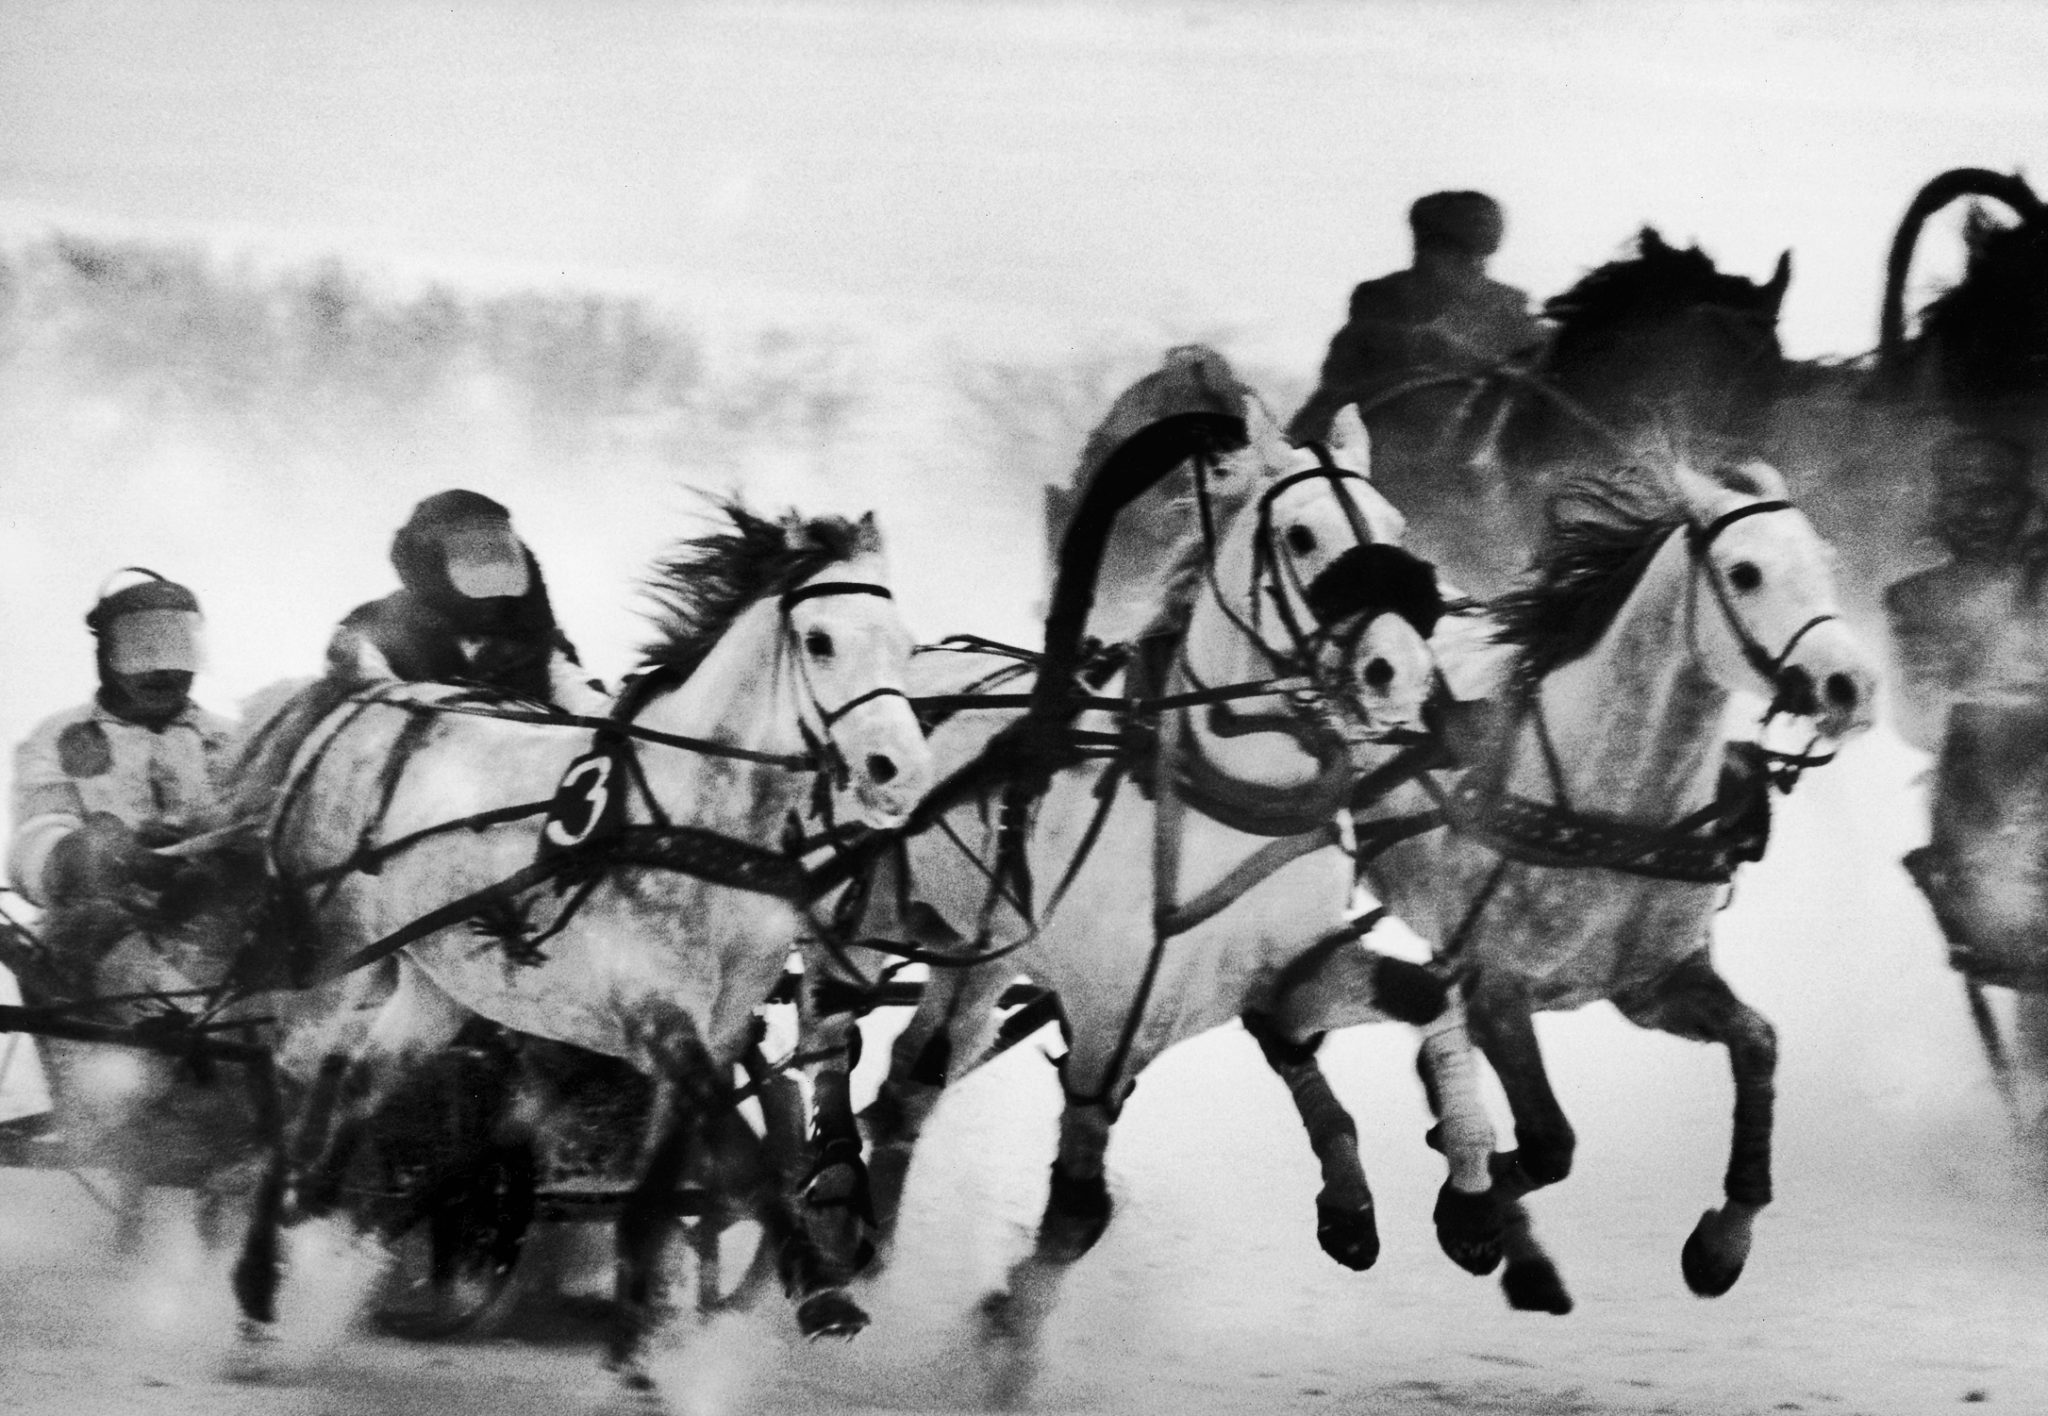 Troika race at Hippodrome, 1963.